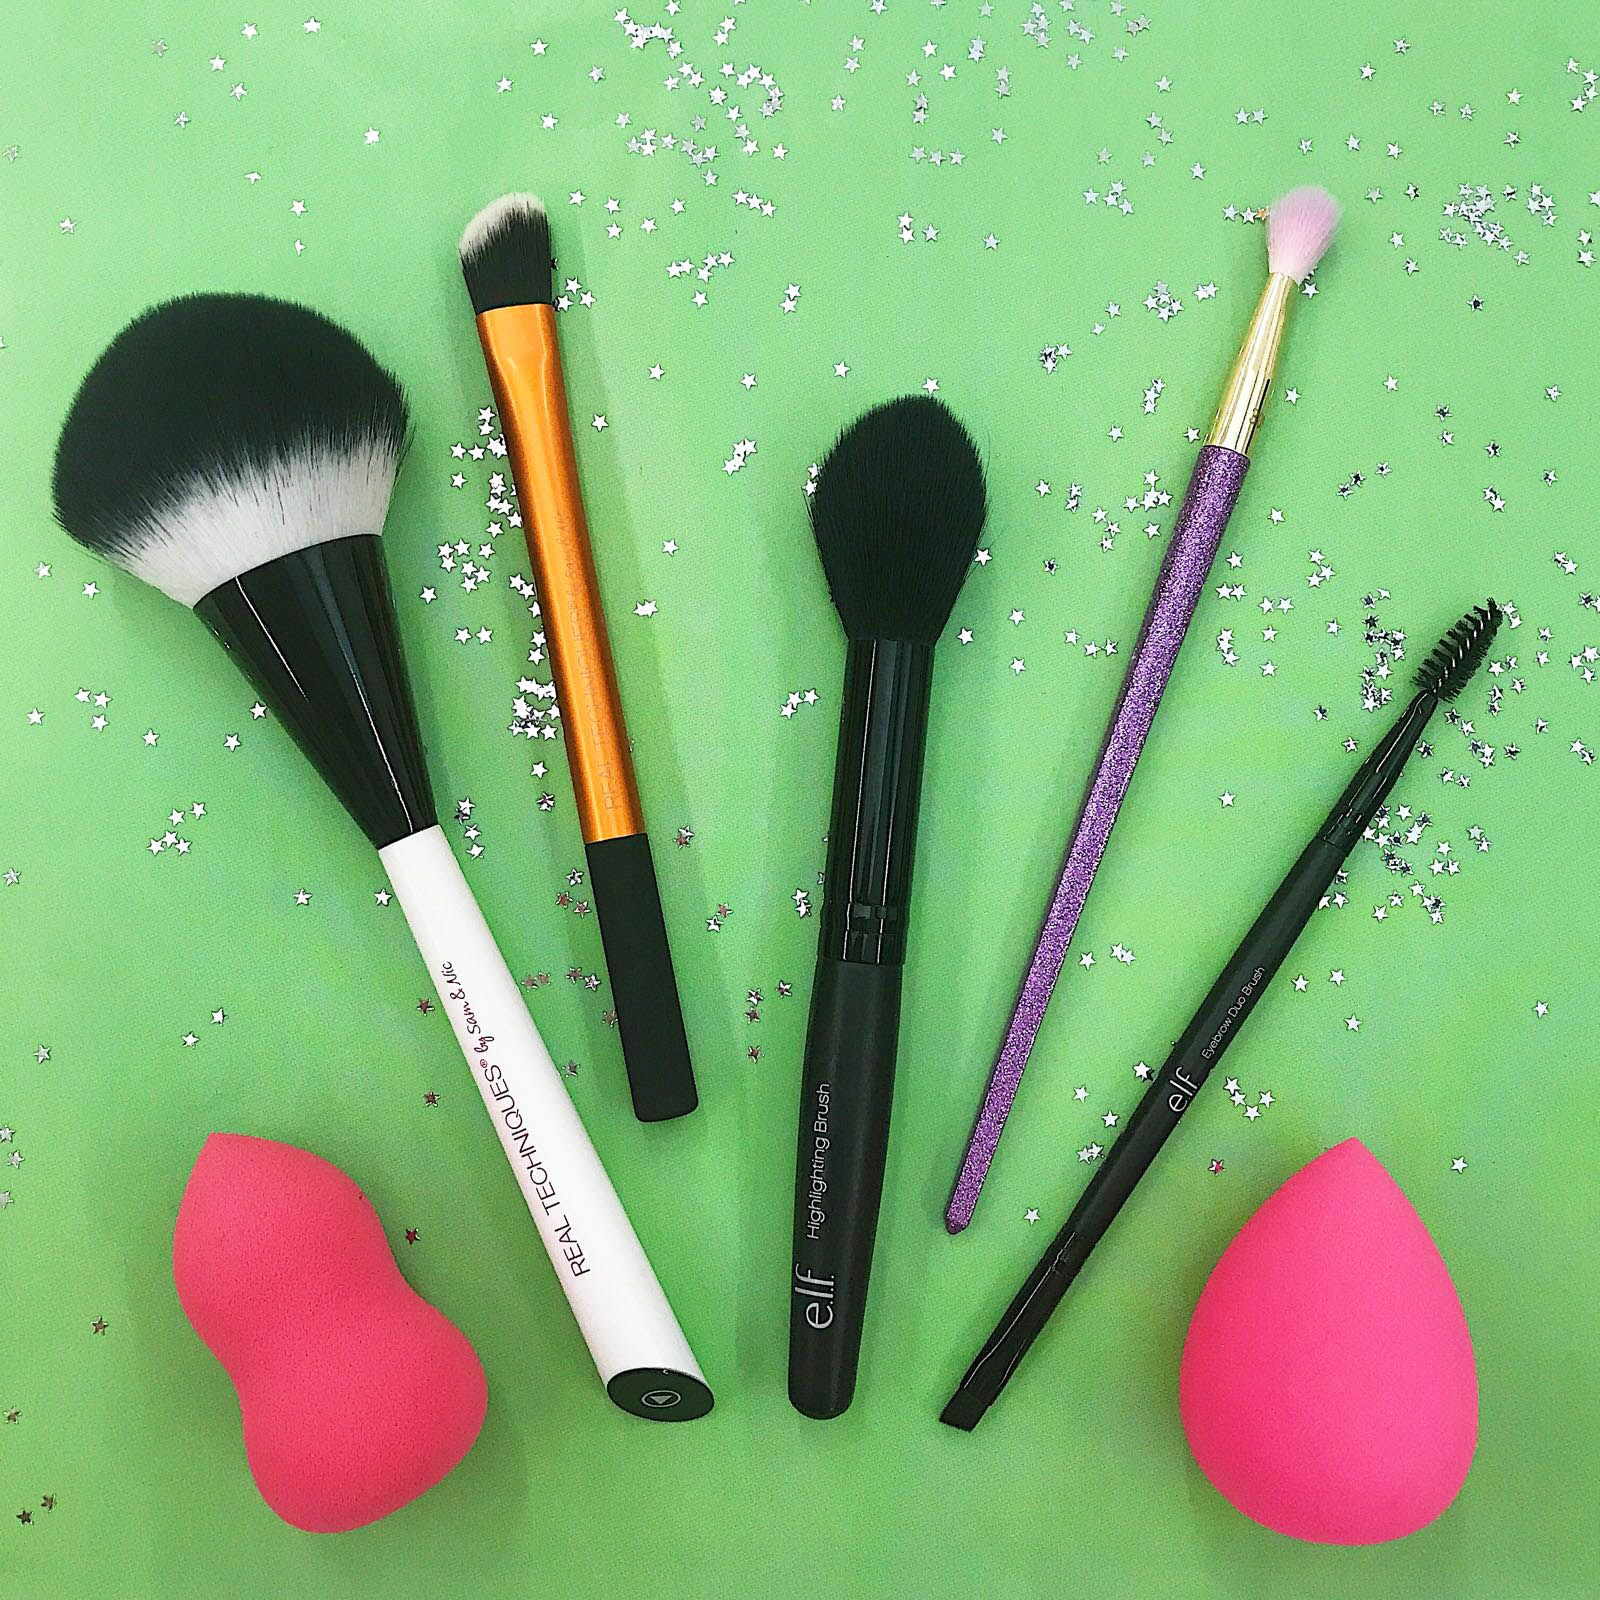 Keep your makeup brushes cruelty free this Veganuary with